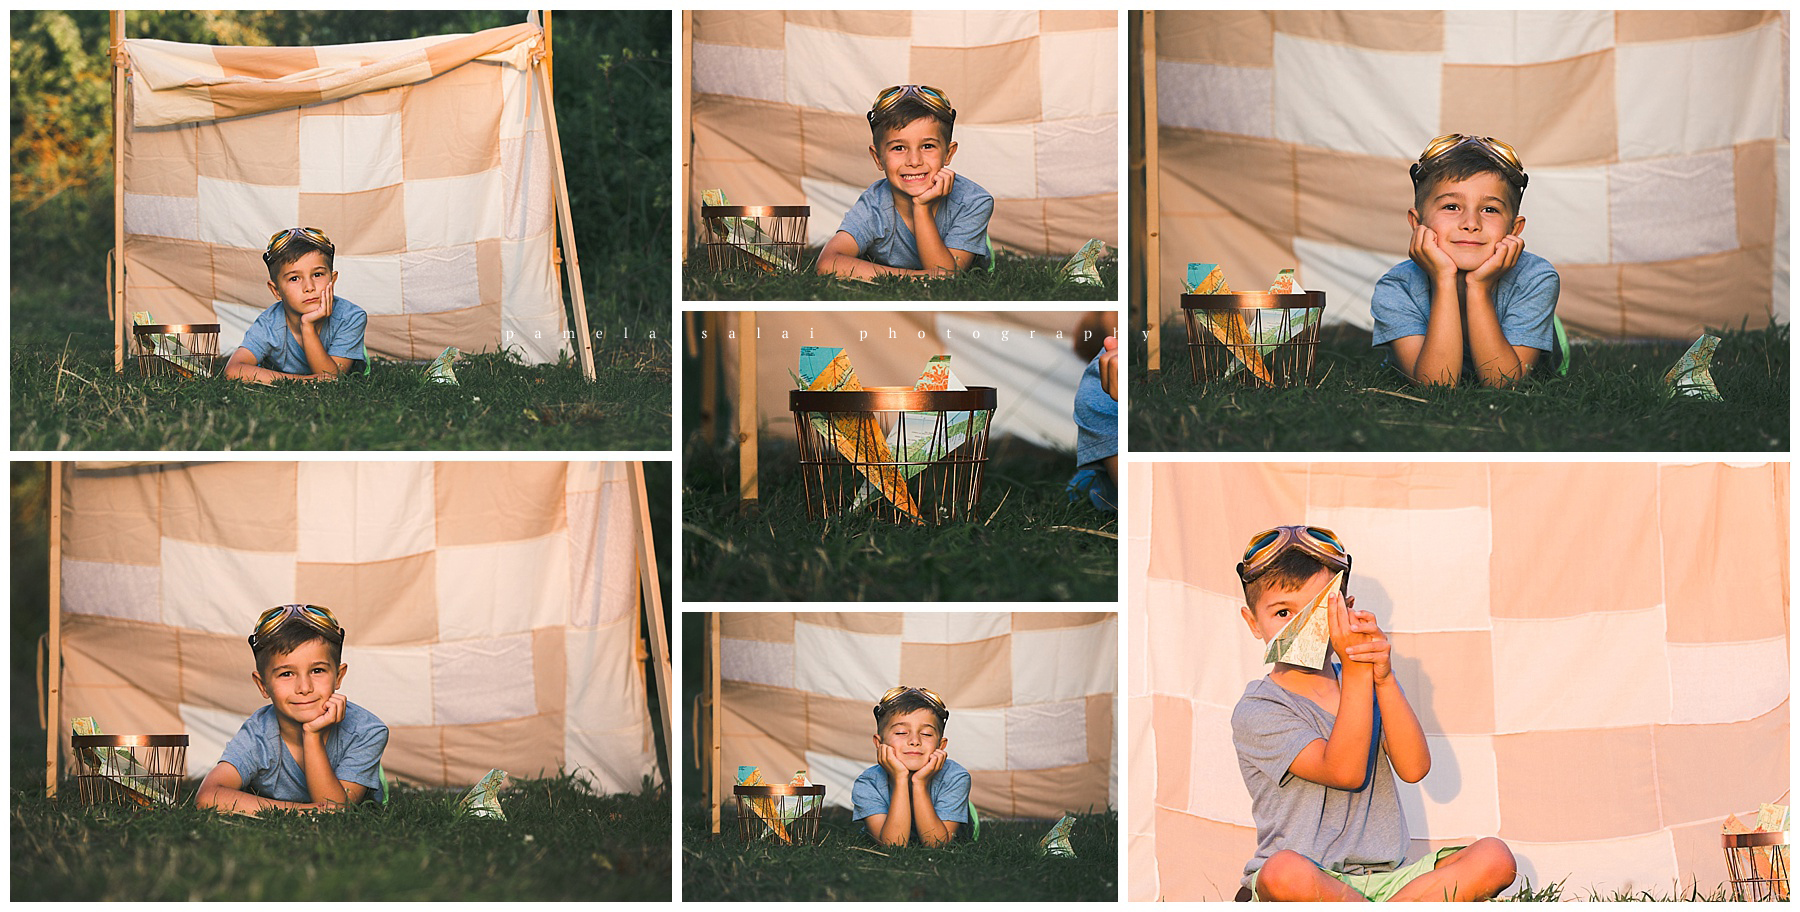 Paper airplane adventures of a 6 year old boy. Film look , golden hour, styled